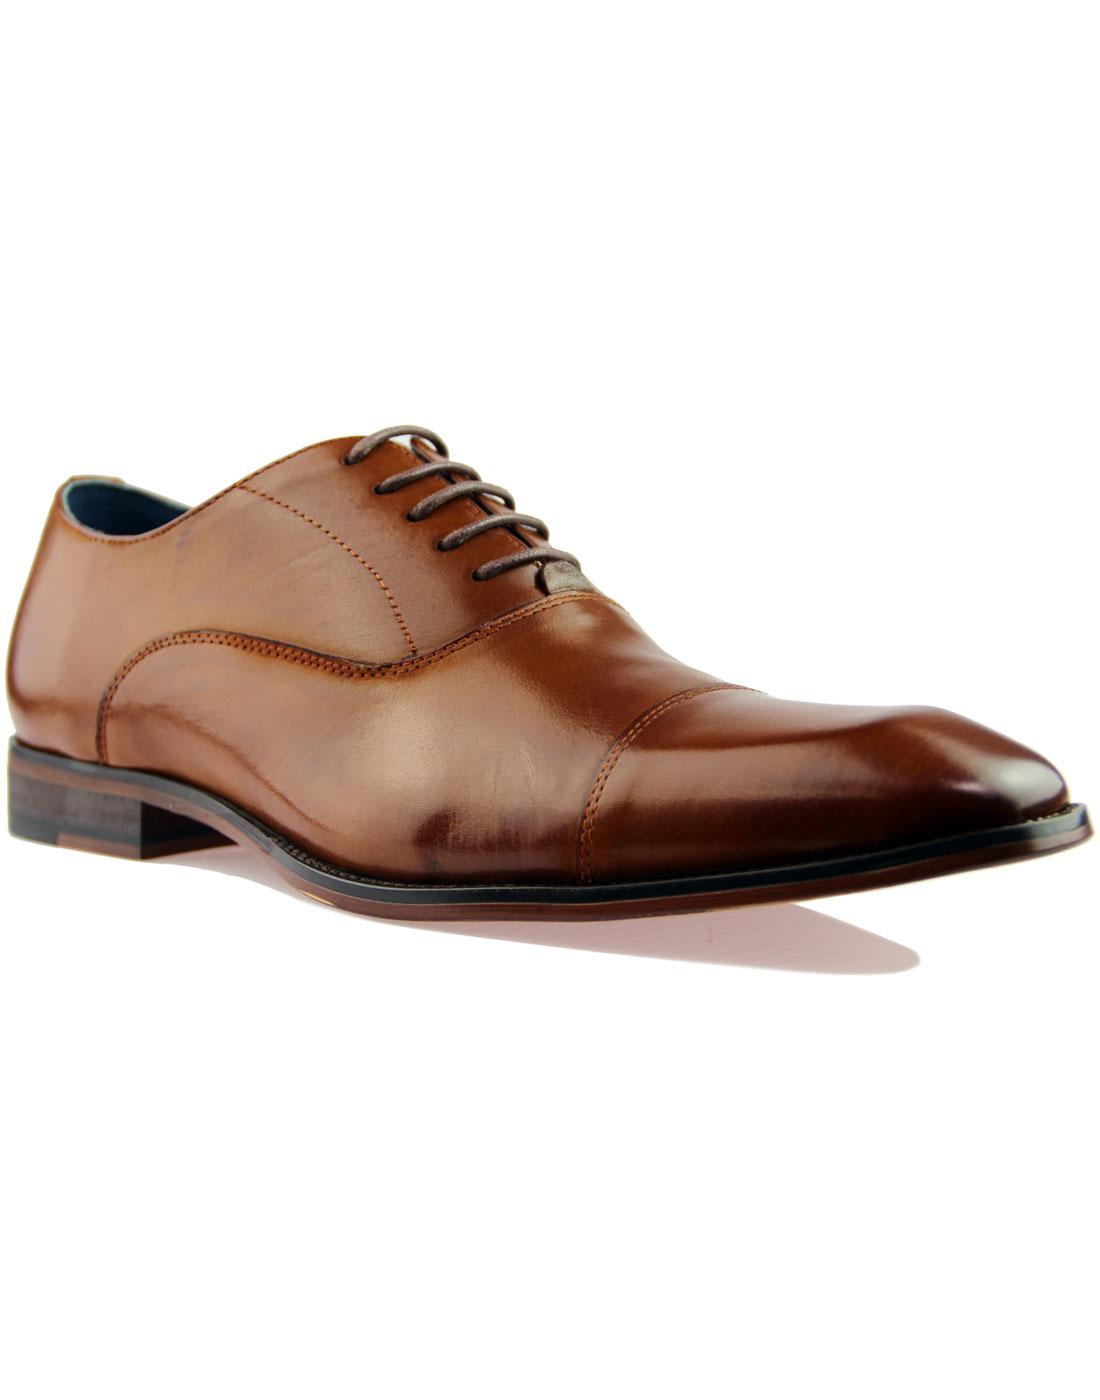 Thistle PAOLO VANDINI 60s Mod Oxford Toe Cap Shoes